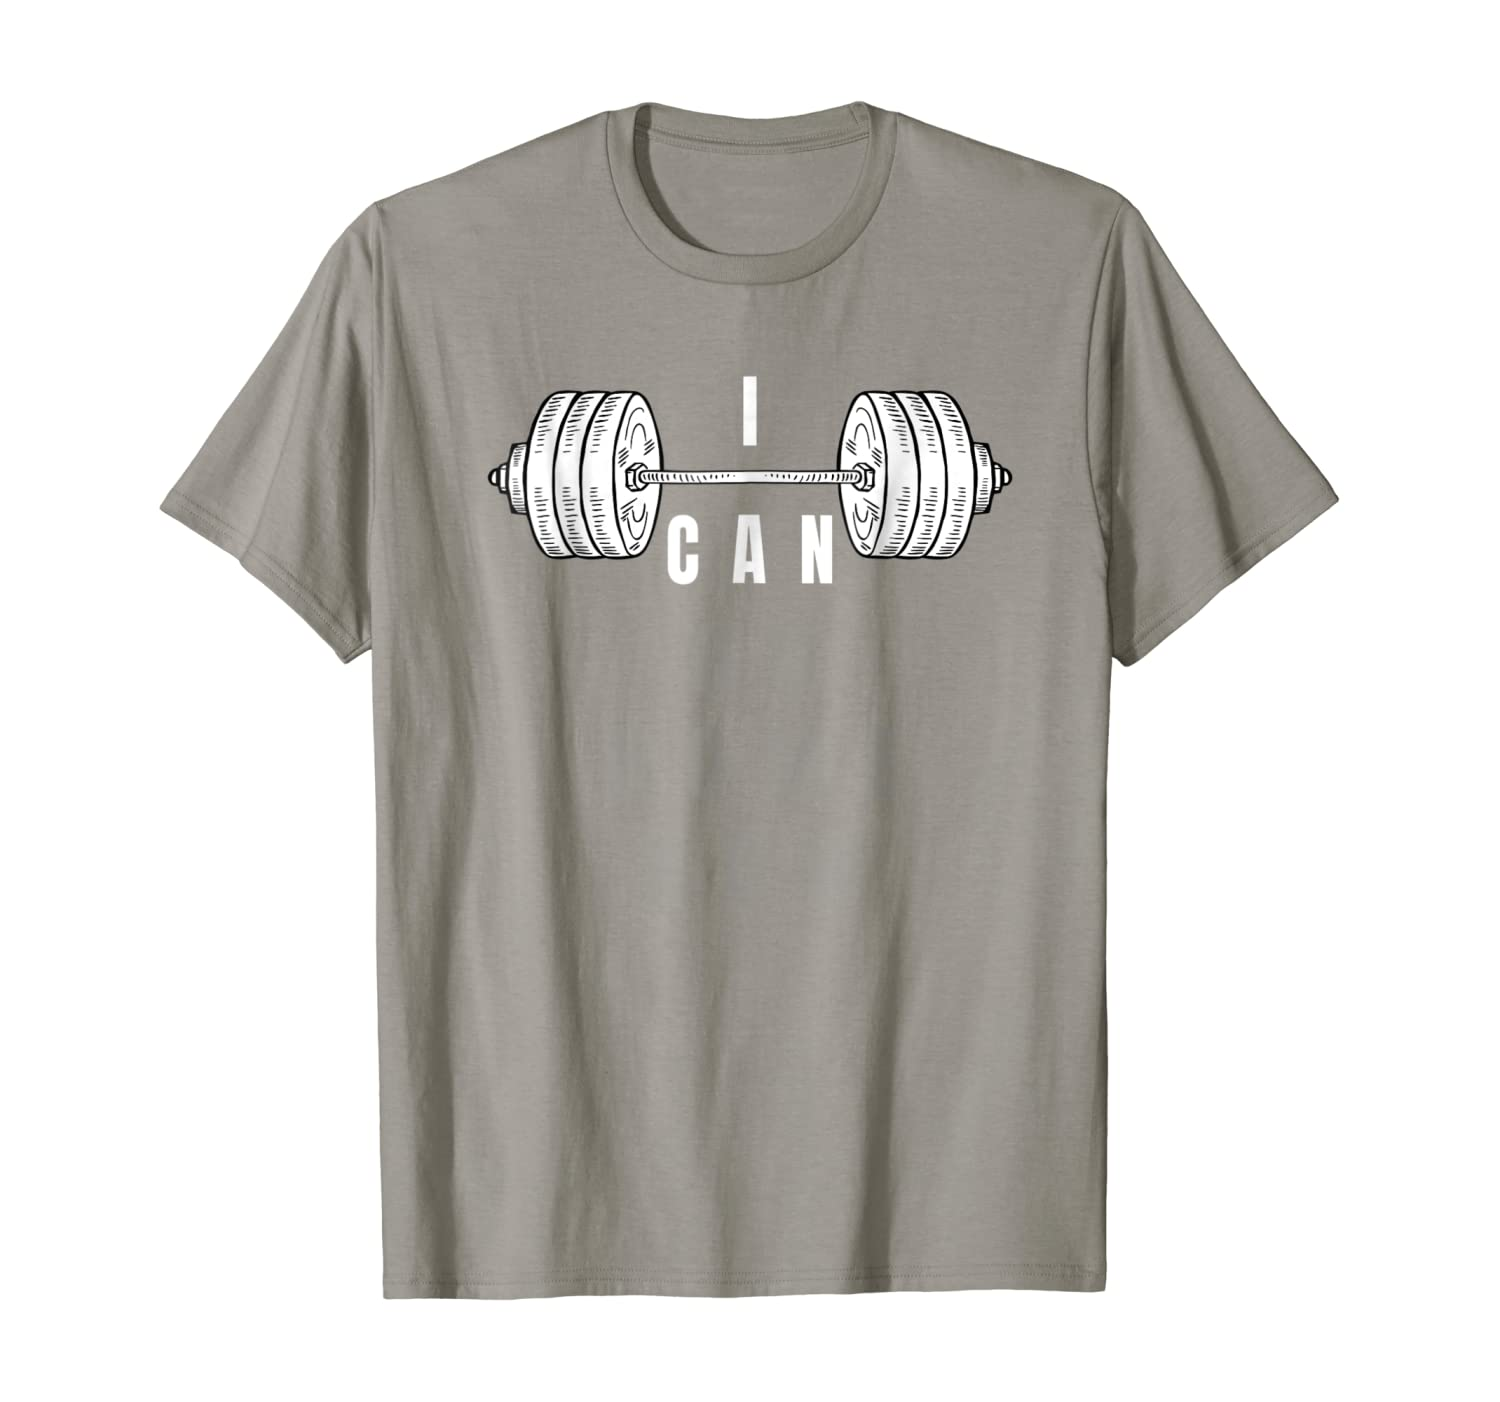 I Can Go Home Now Workout Gym T Shirt for Men Women